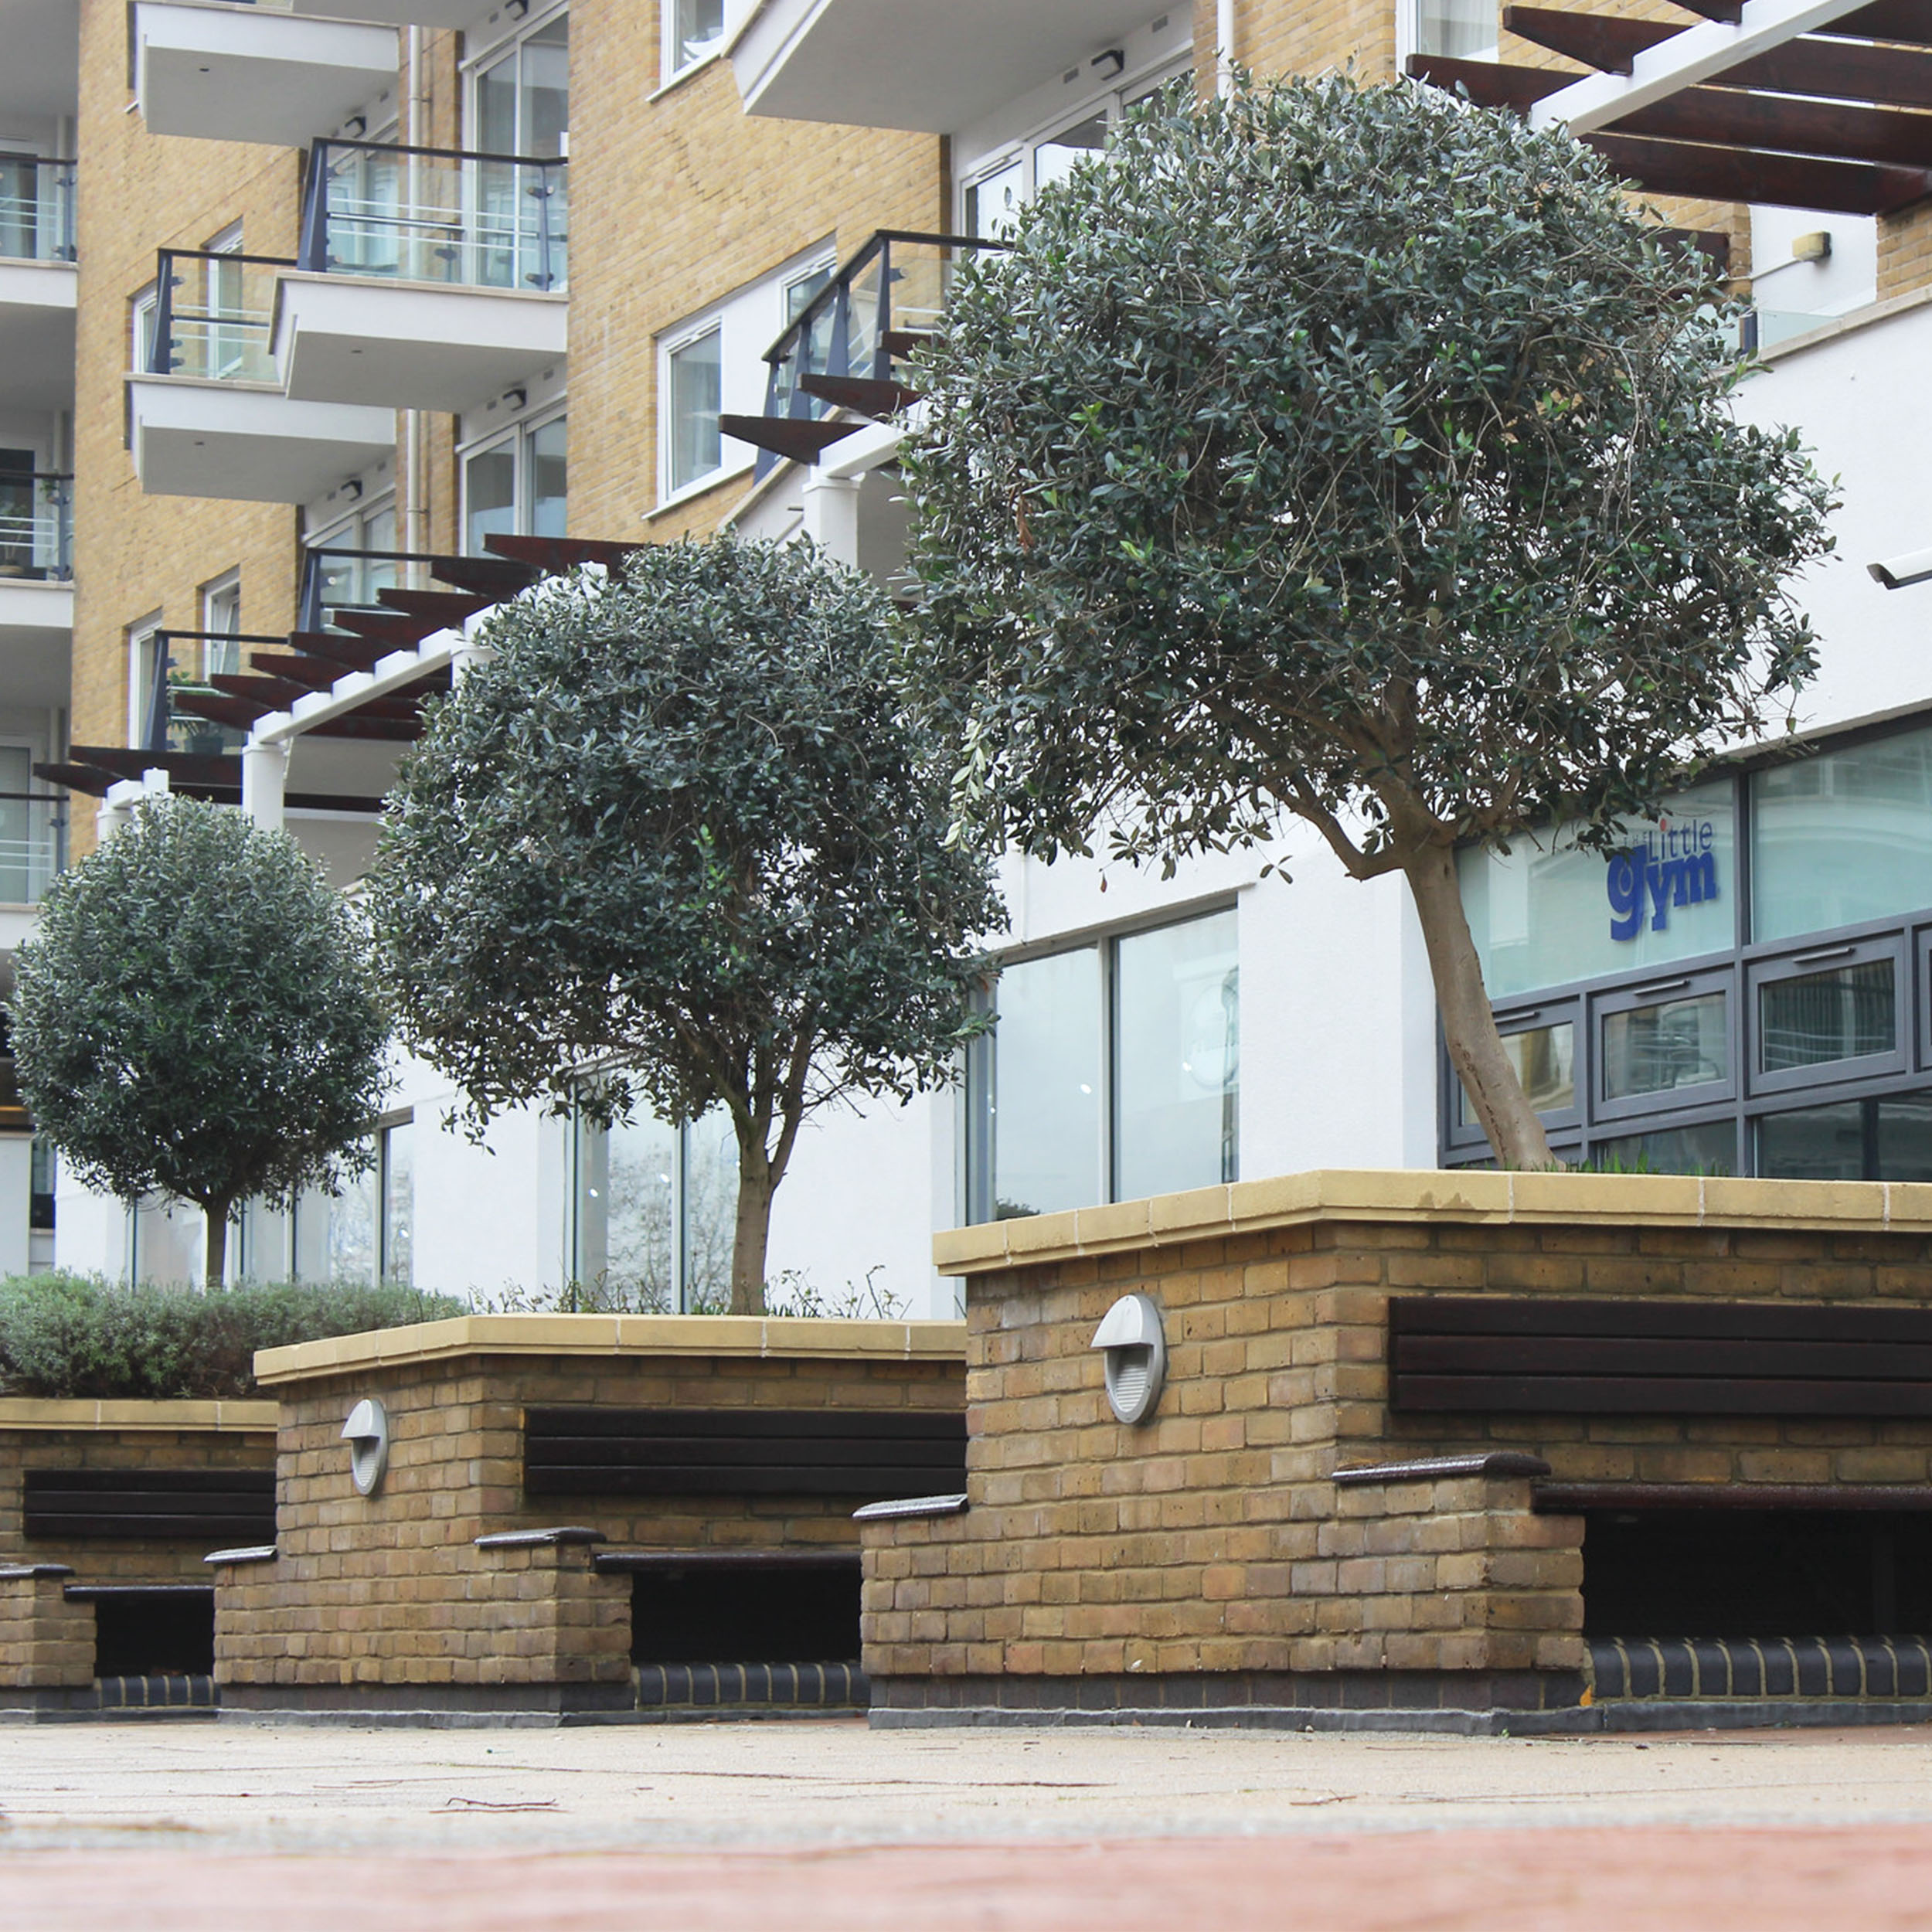 Forecourt of a private housing area shows the new brickwork and painting applied to benches and planters